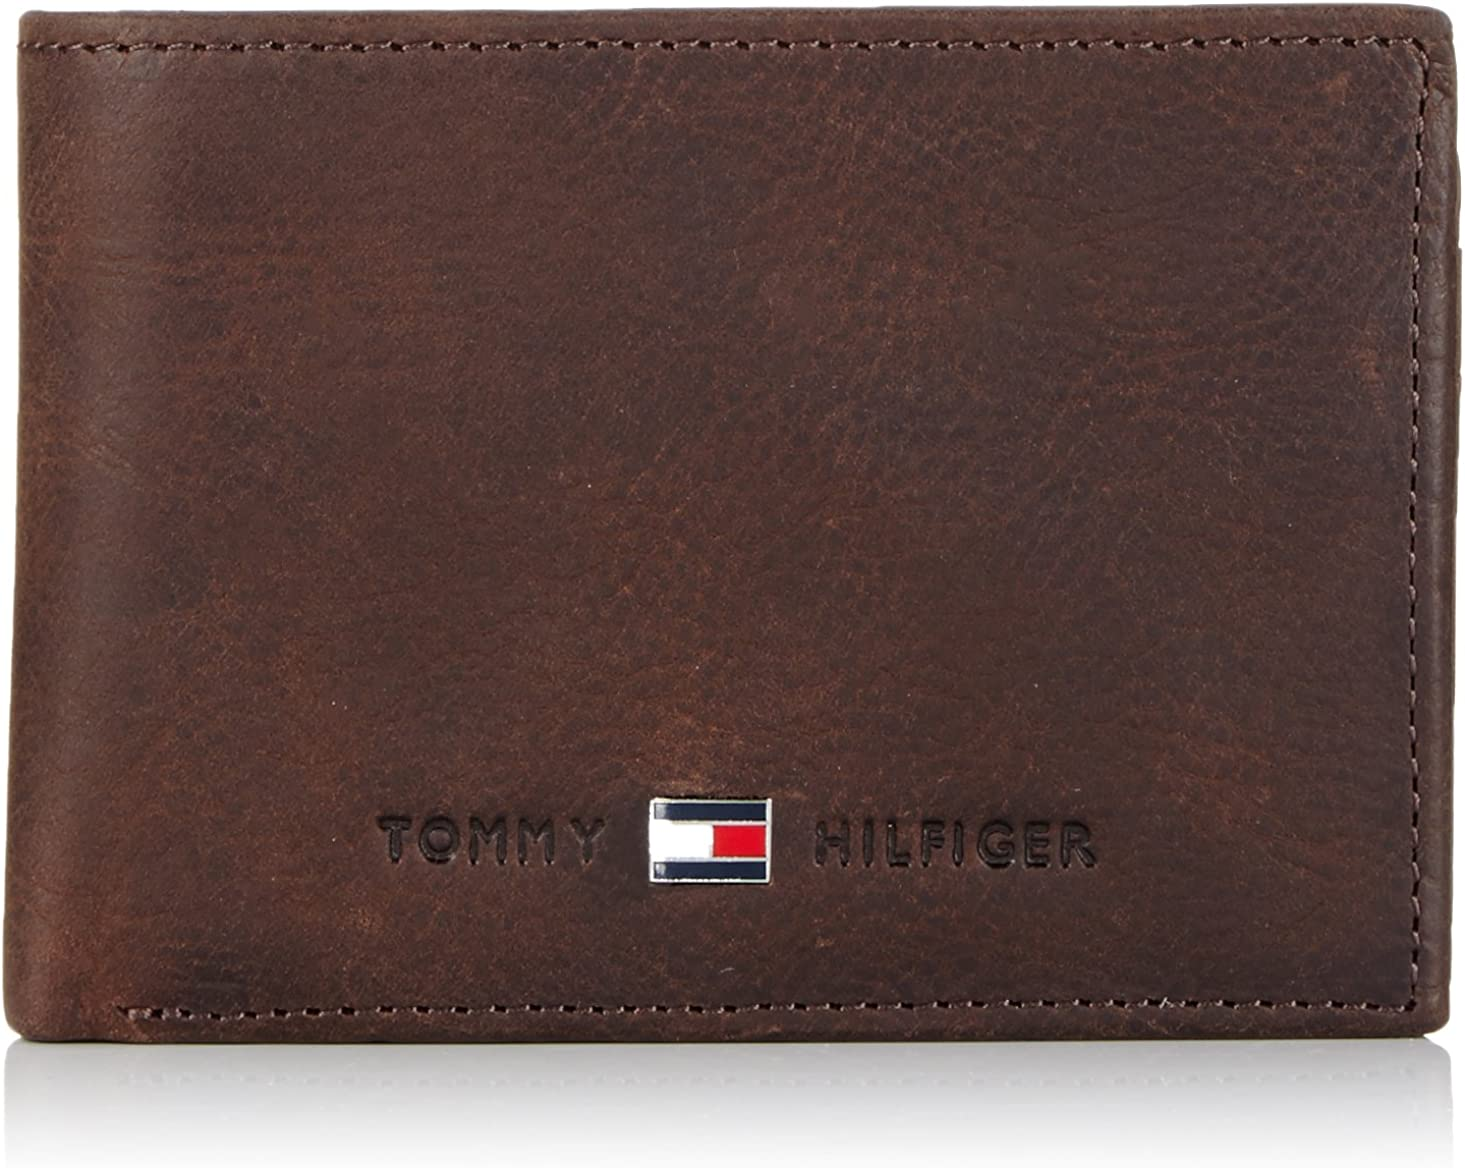 Tommy Hilfiger Johnson Mini CC Flap & Coin Pocket - Cartera para Hombre, Color